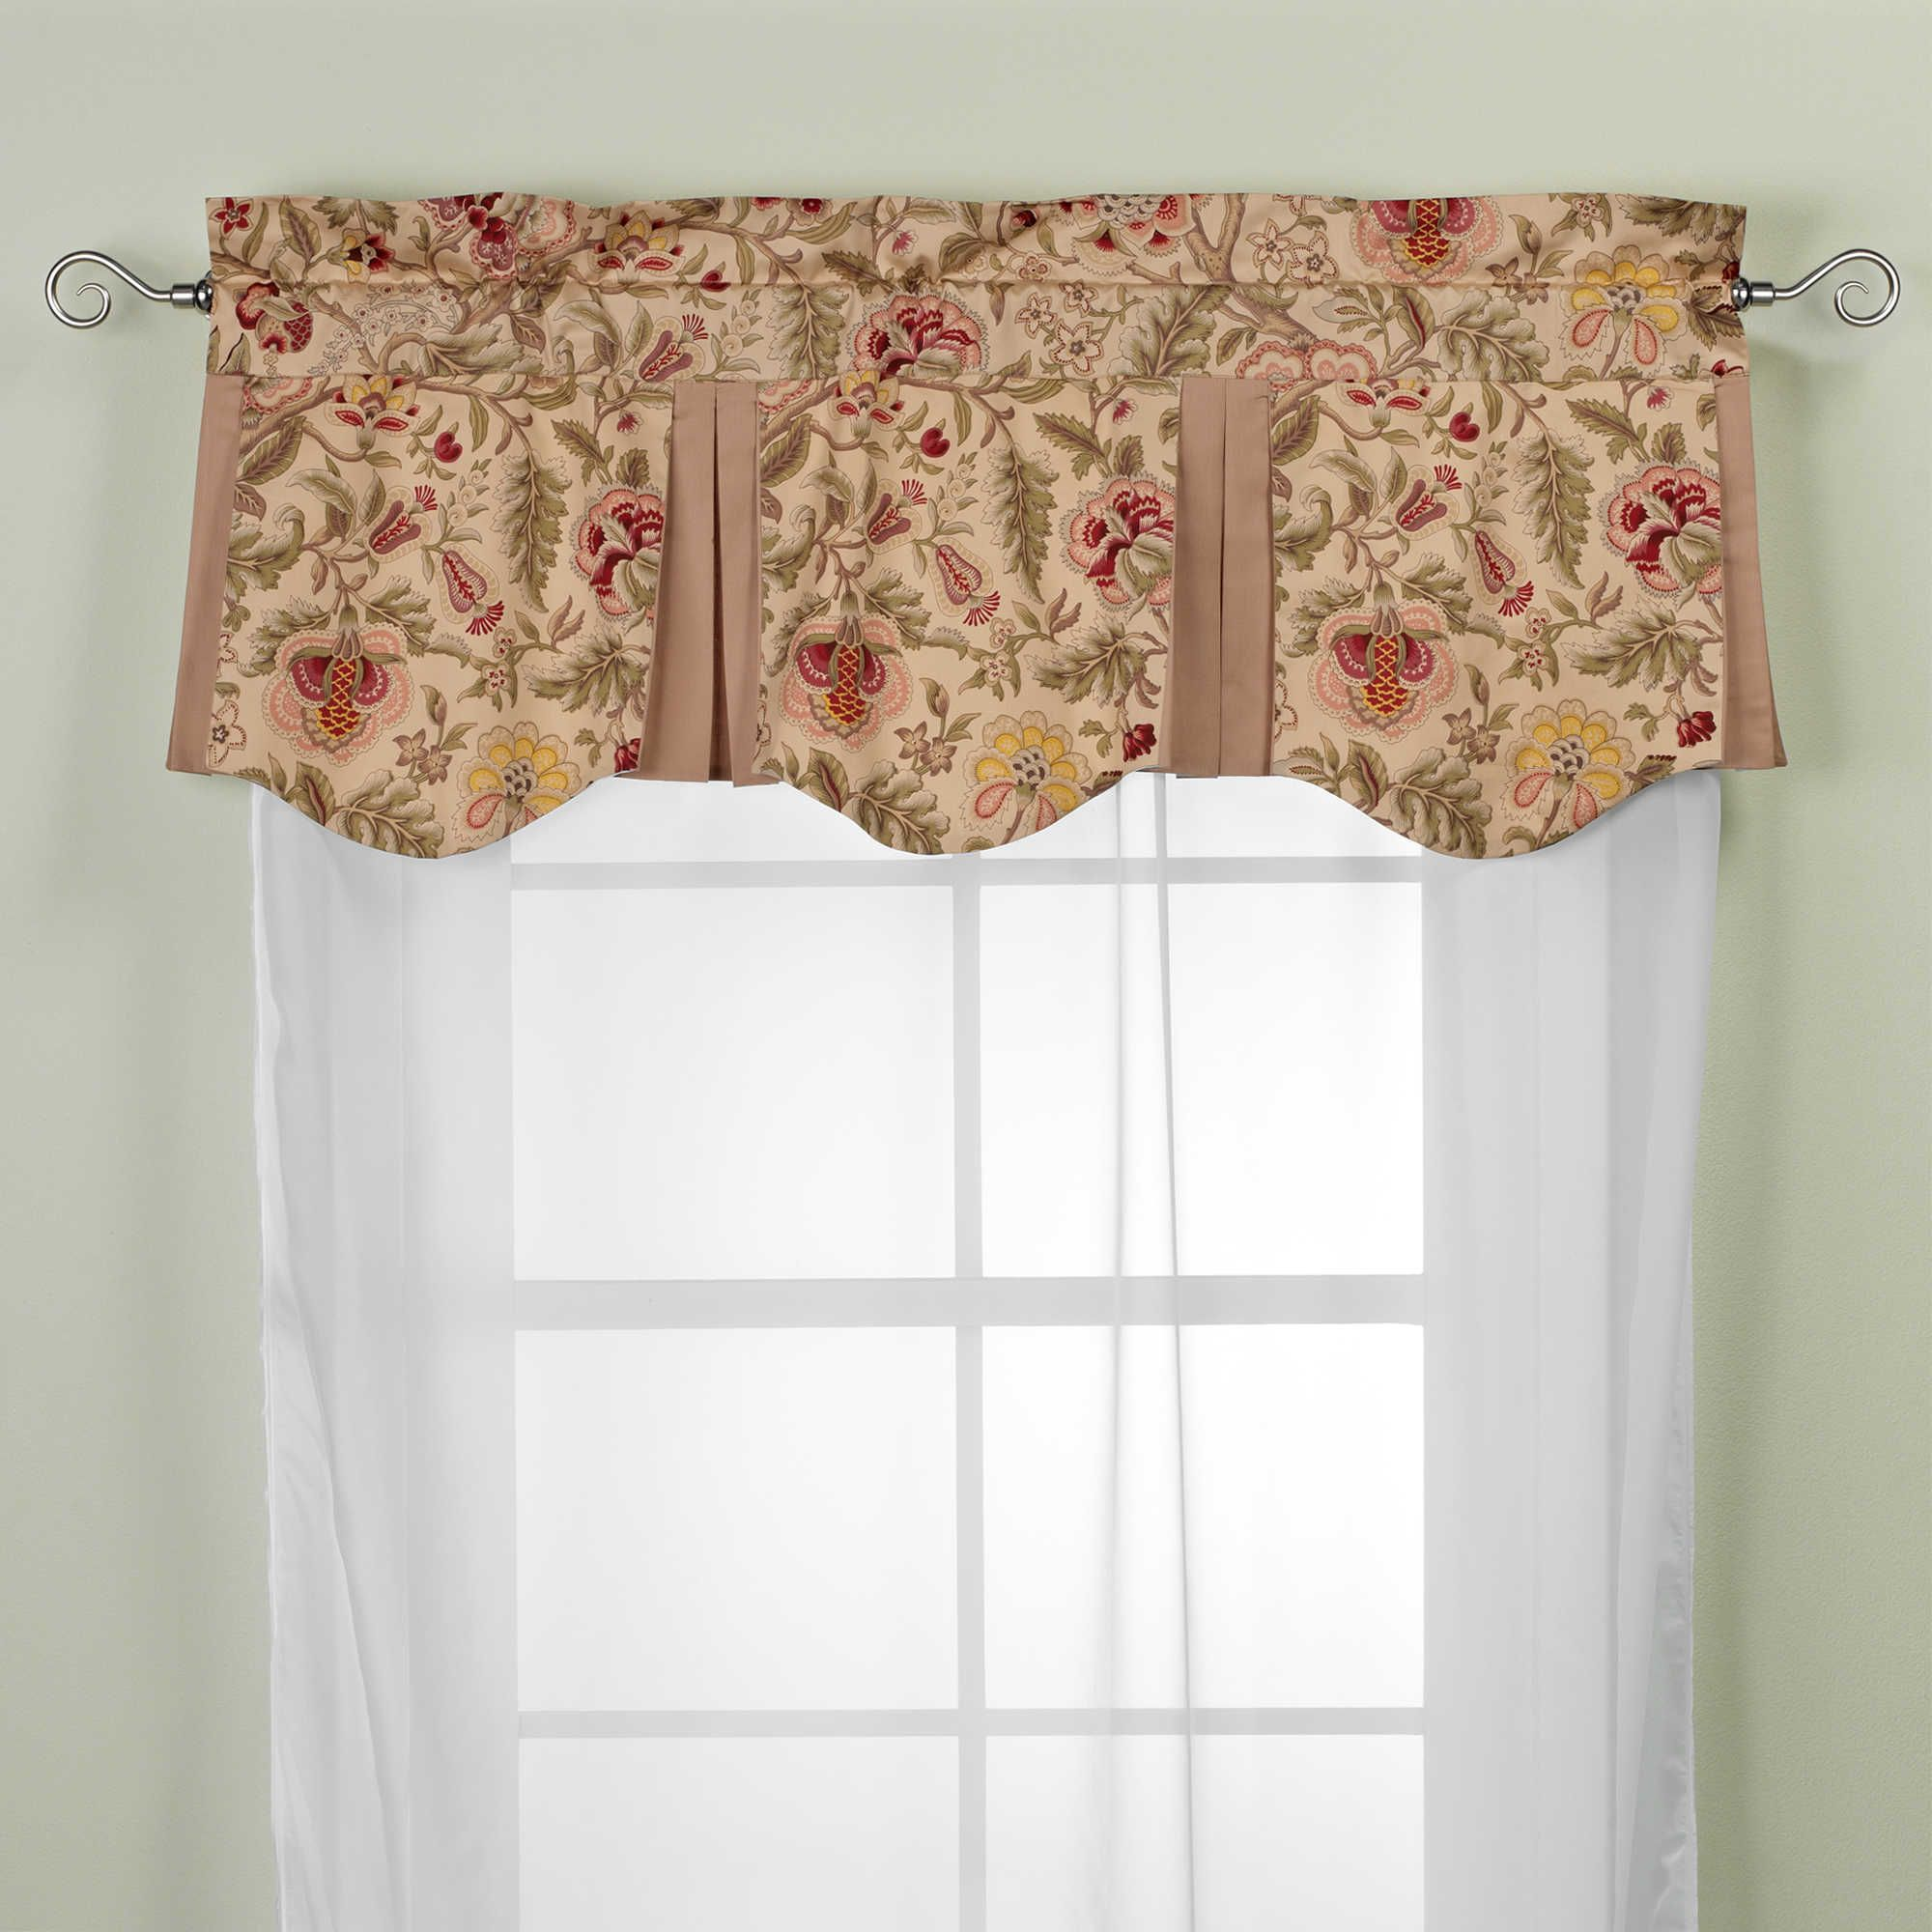 Imperial Dress Antique Valance | Valance, Living room window ...